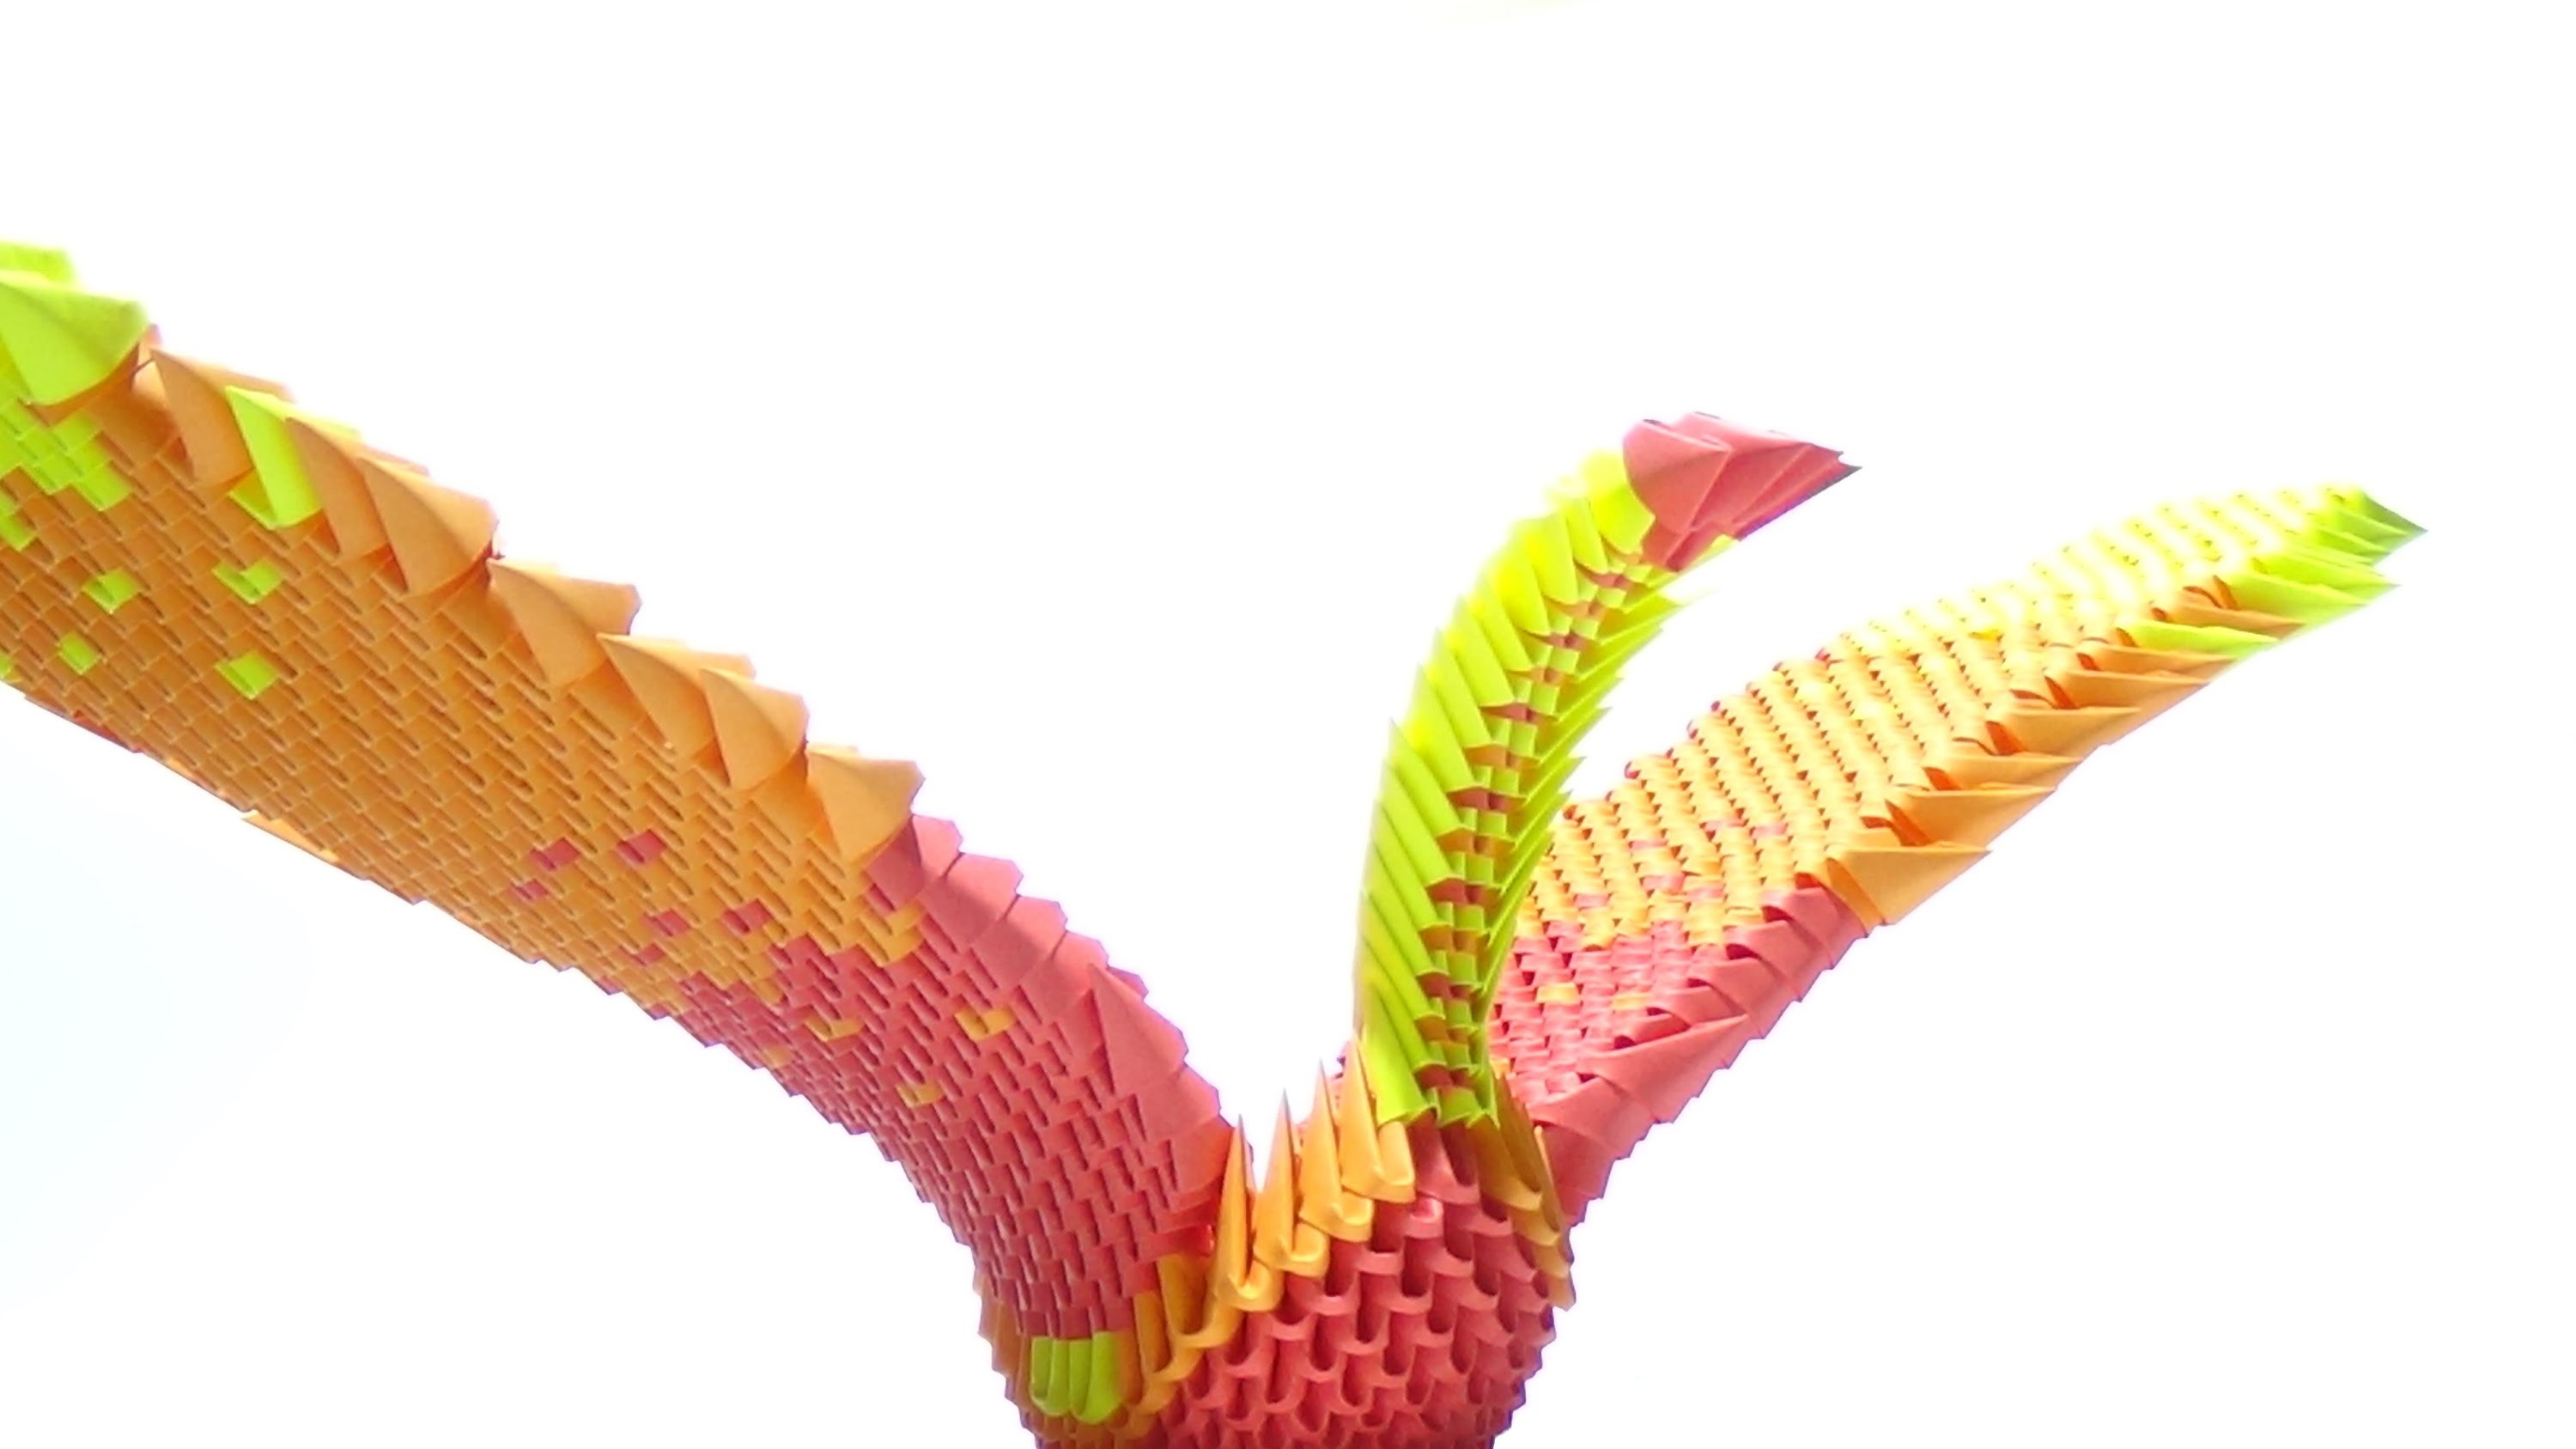 How To Make a 3D Origami Phoenix